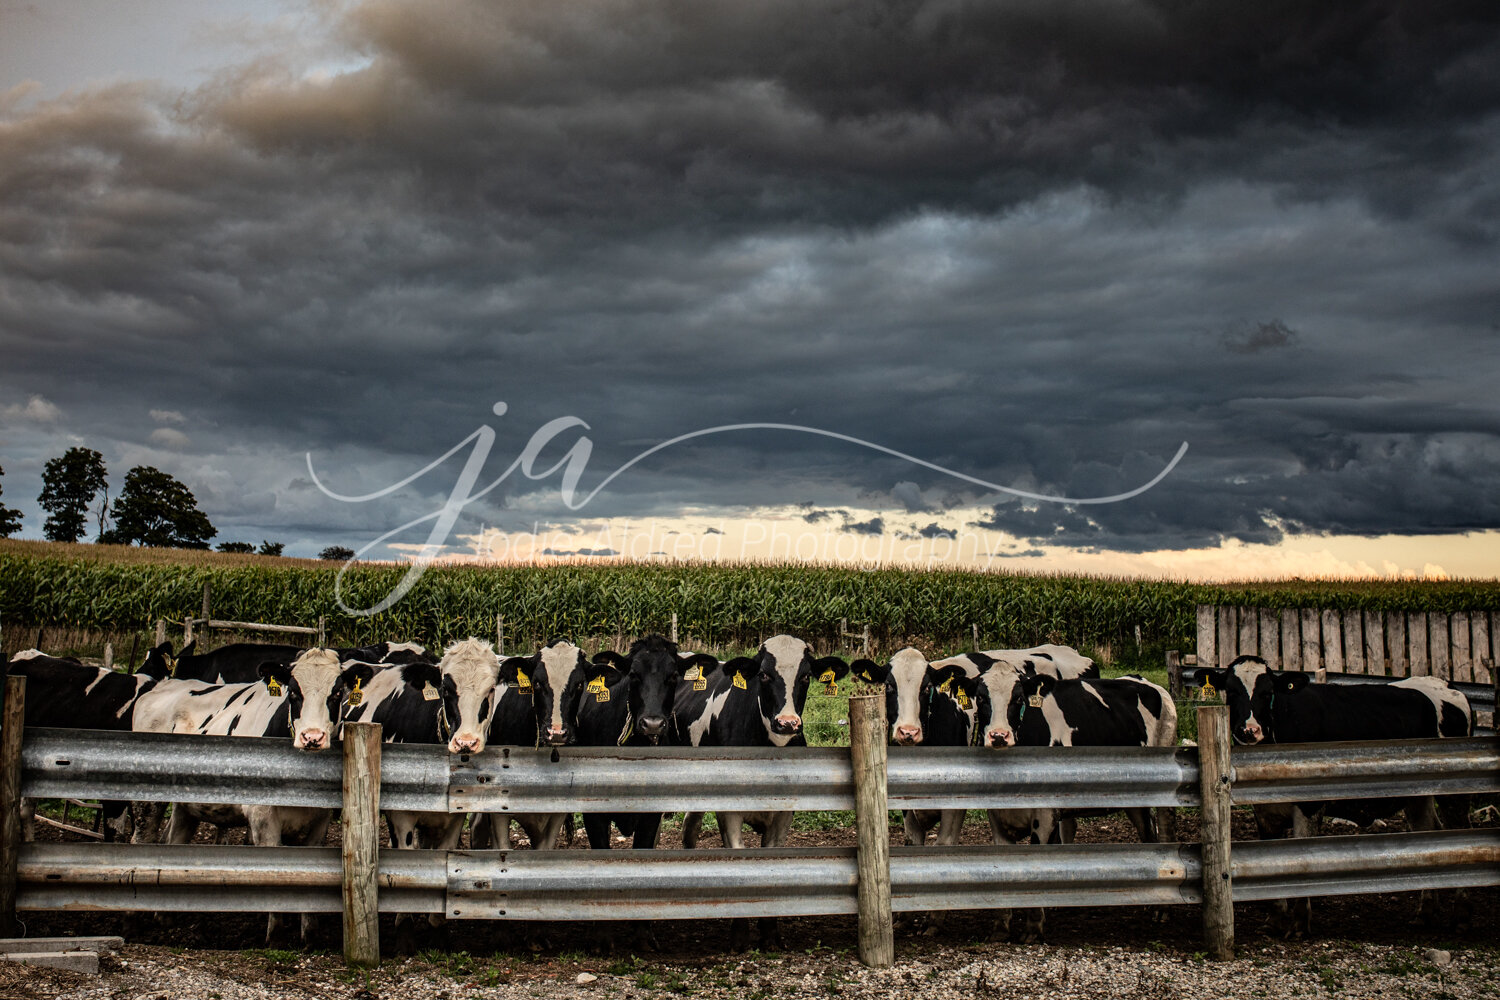 Jodie-Aldred-Photography-Farm-Agricultural-Photographer-Farming-Rural-Country-Chatham-Kent-Ontario-Canadian-Canada-Elgin-Middlesex-London-Huron-Lambton-Farmer-Dairy-Cow-Calf-Cattle-Storm-Corn-Barnyard-Barn-Heifer